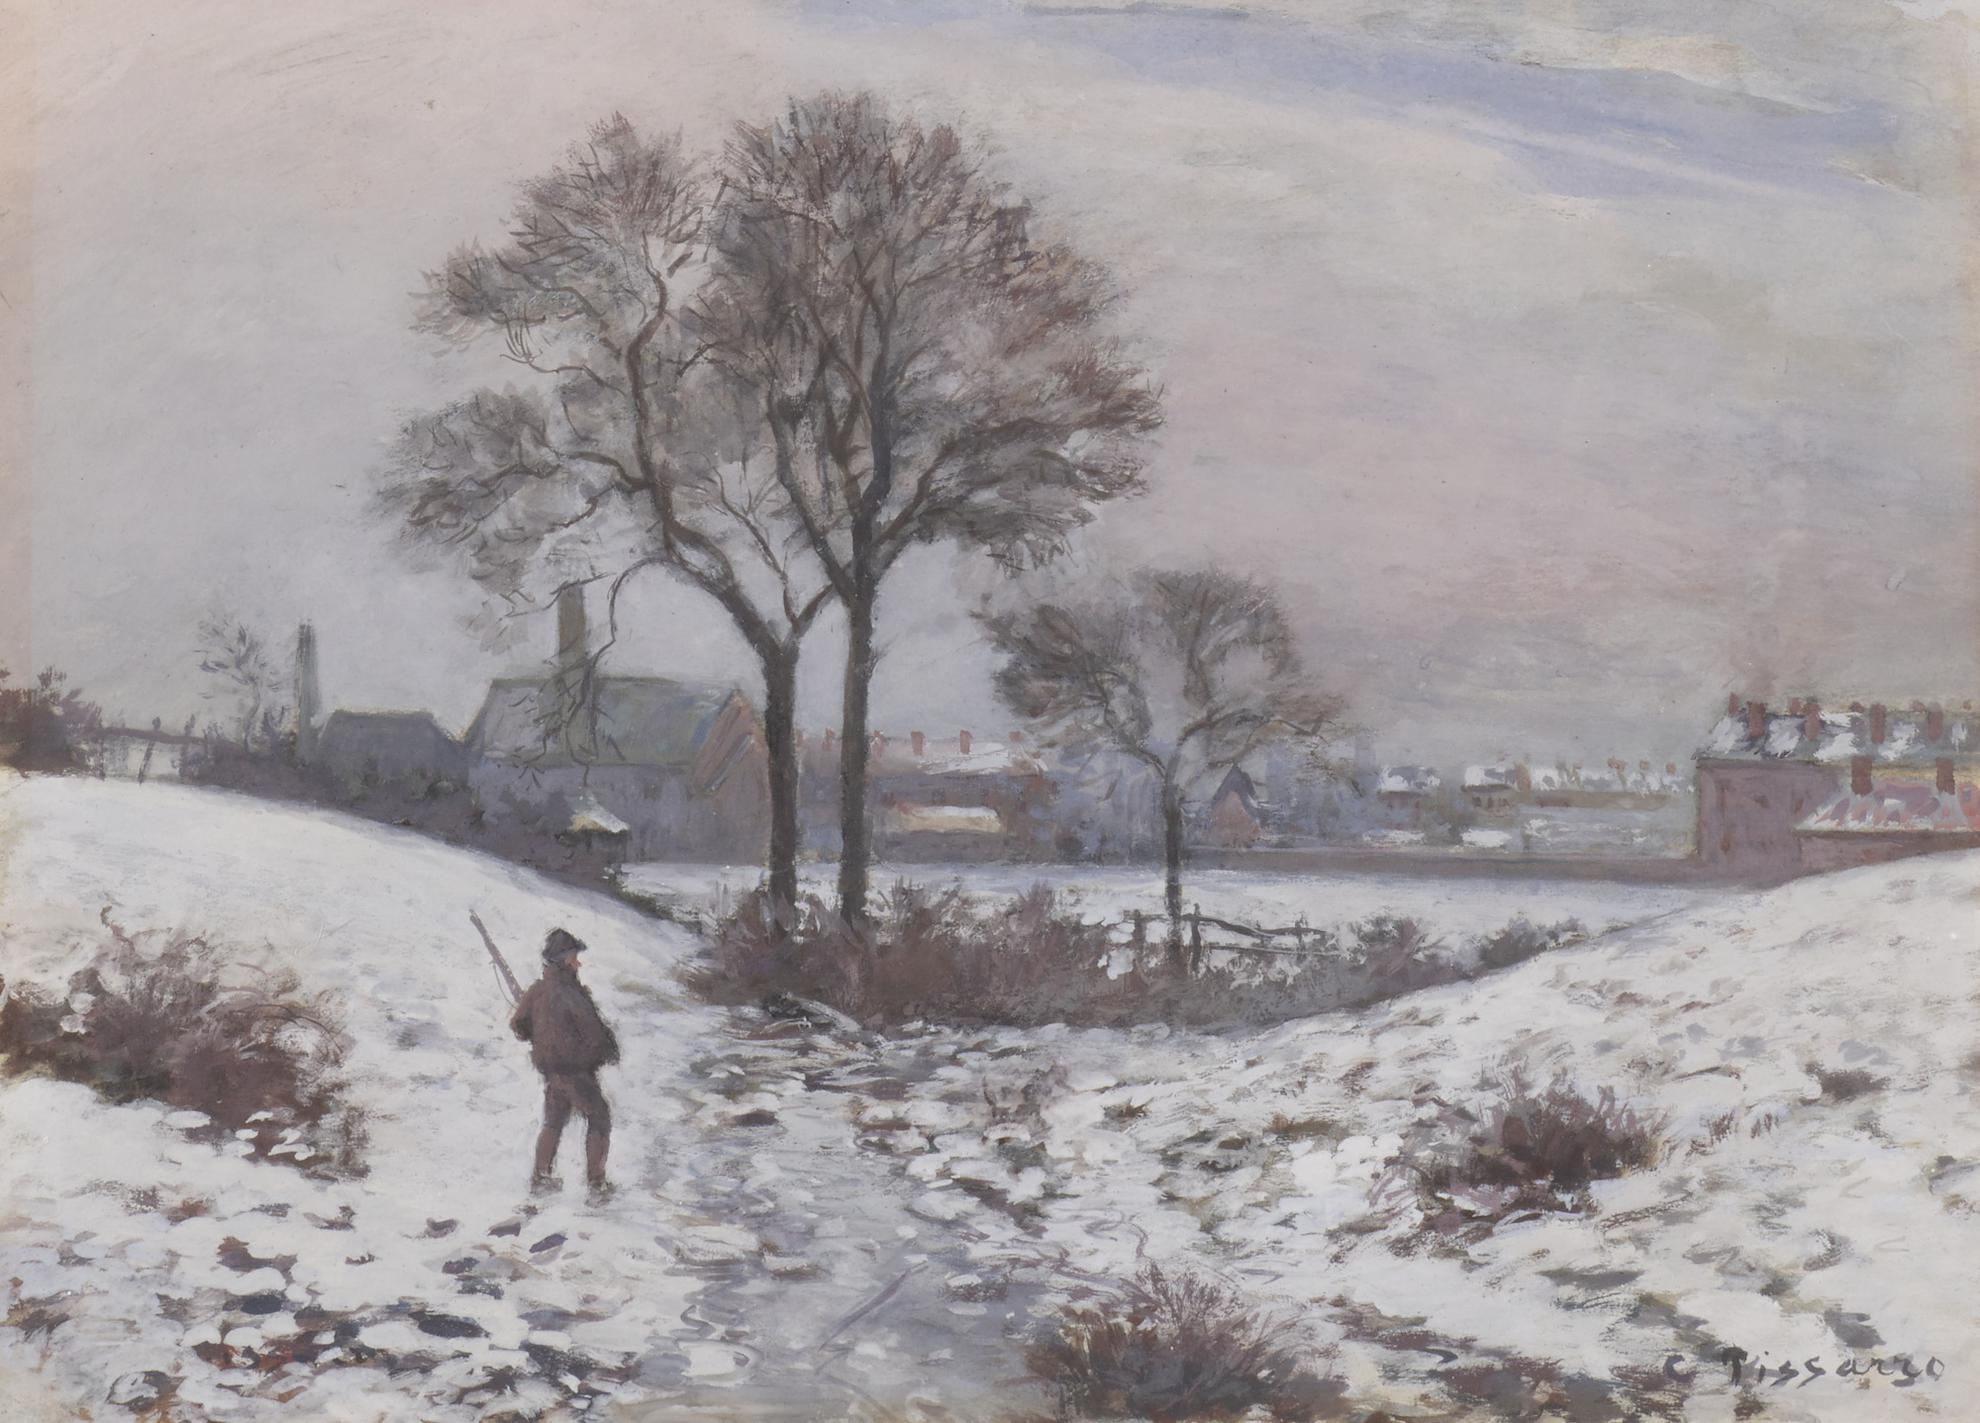 Camille Pissarro-Chasseur En Hiver, Paysage A Norwood-1870